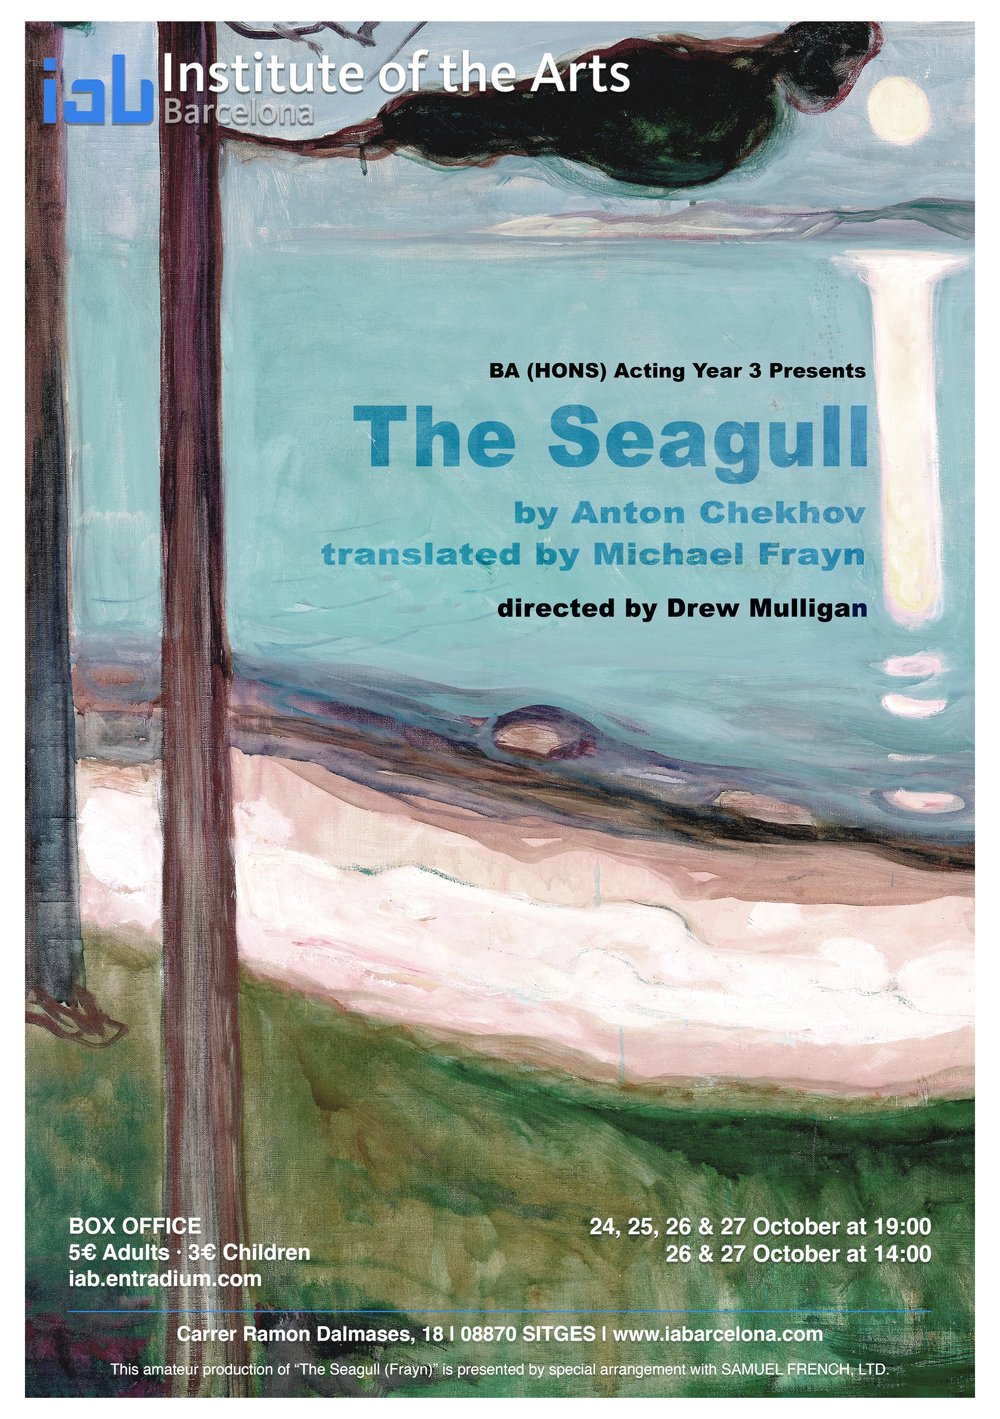 The Seagull - BA (Hons) Acting Year 3